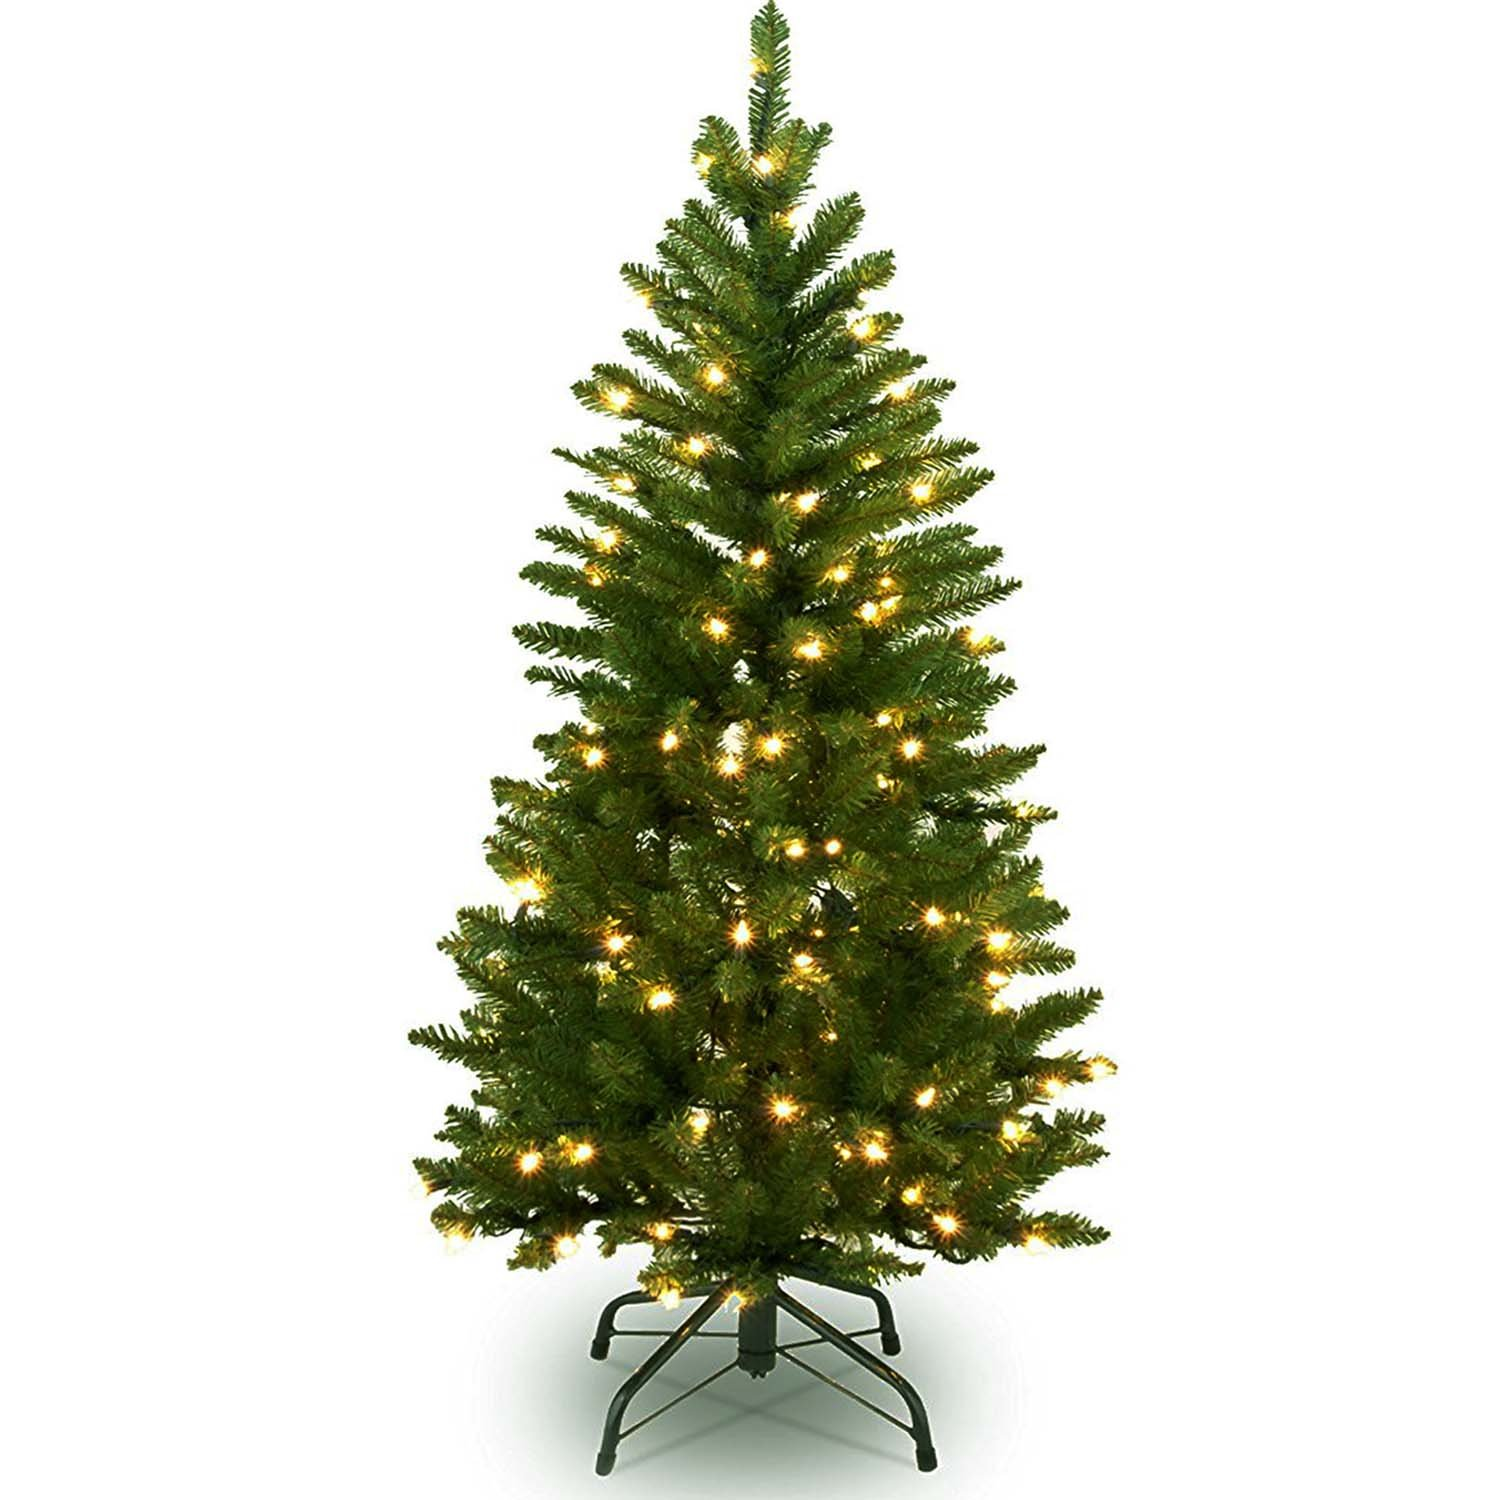 9 FT Christmas Tree W/ 1000 LED Lights , 9 Foot Xmas Tree W/ Hinged Construction for Easy Assembly, 9' Chirstmas Trees W/ 3774 Branch Tips, Includes Metal Tree Stand